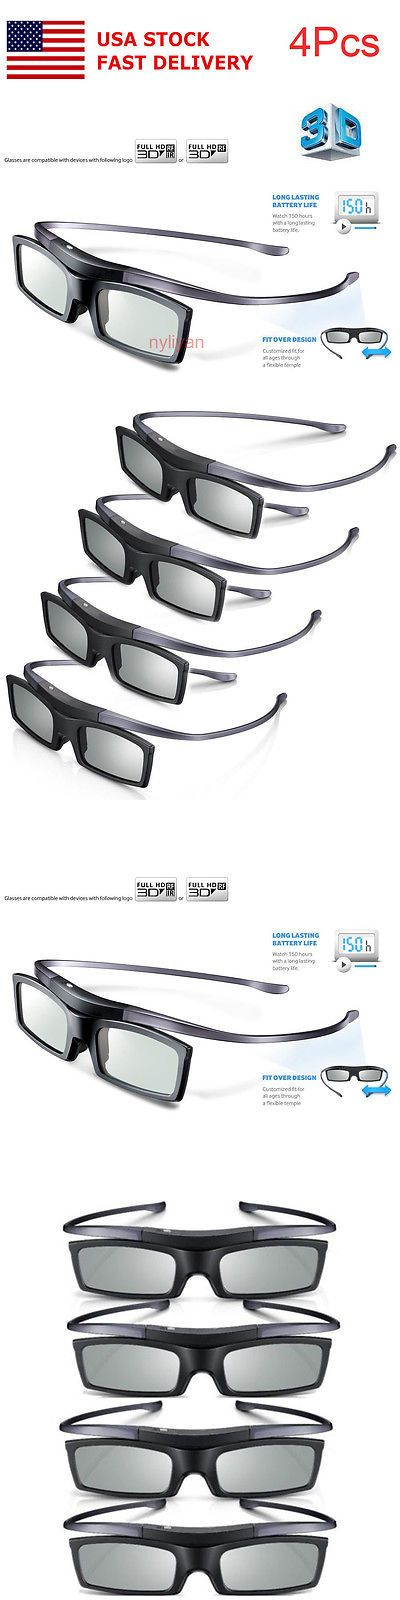 3D TV Glasses and Accessories: Us 4Pcs 3D 4K Hd Uhd Suhd Bt Active Tv Glasses For Samsung Sony Tv Projector -> BUY IT NOW ONLY: $54.99 on eBay!